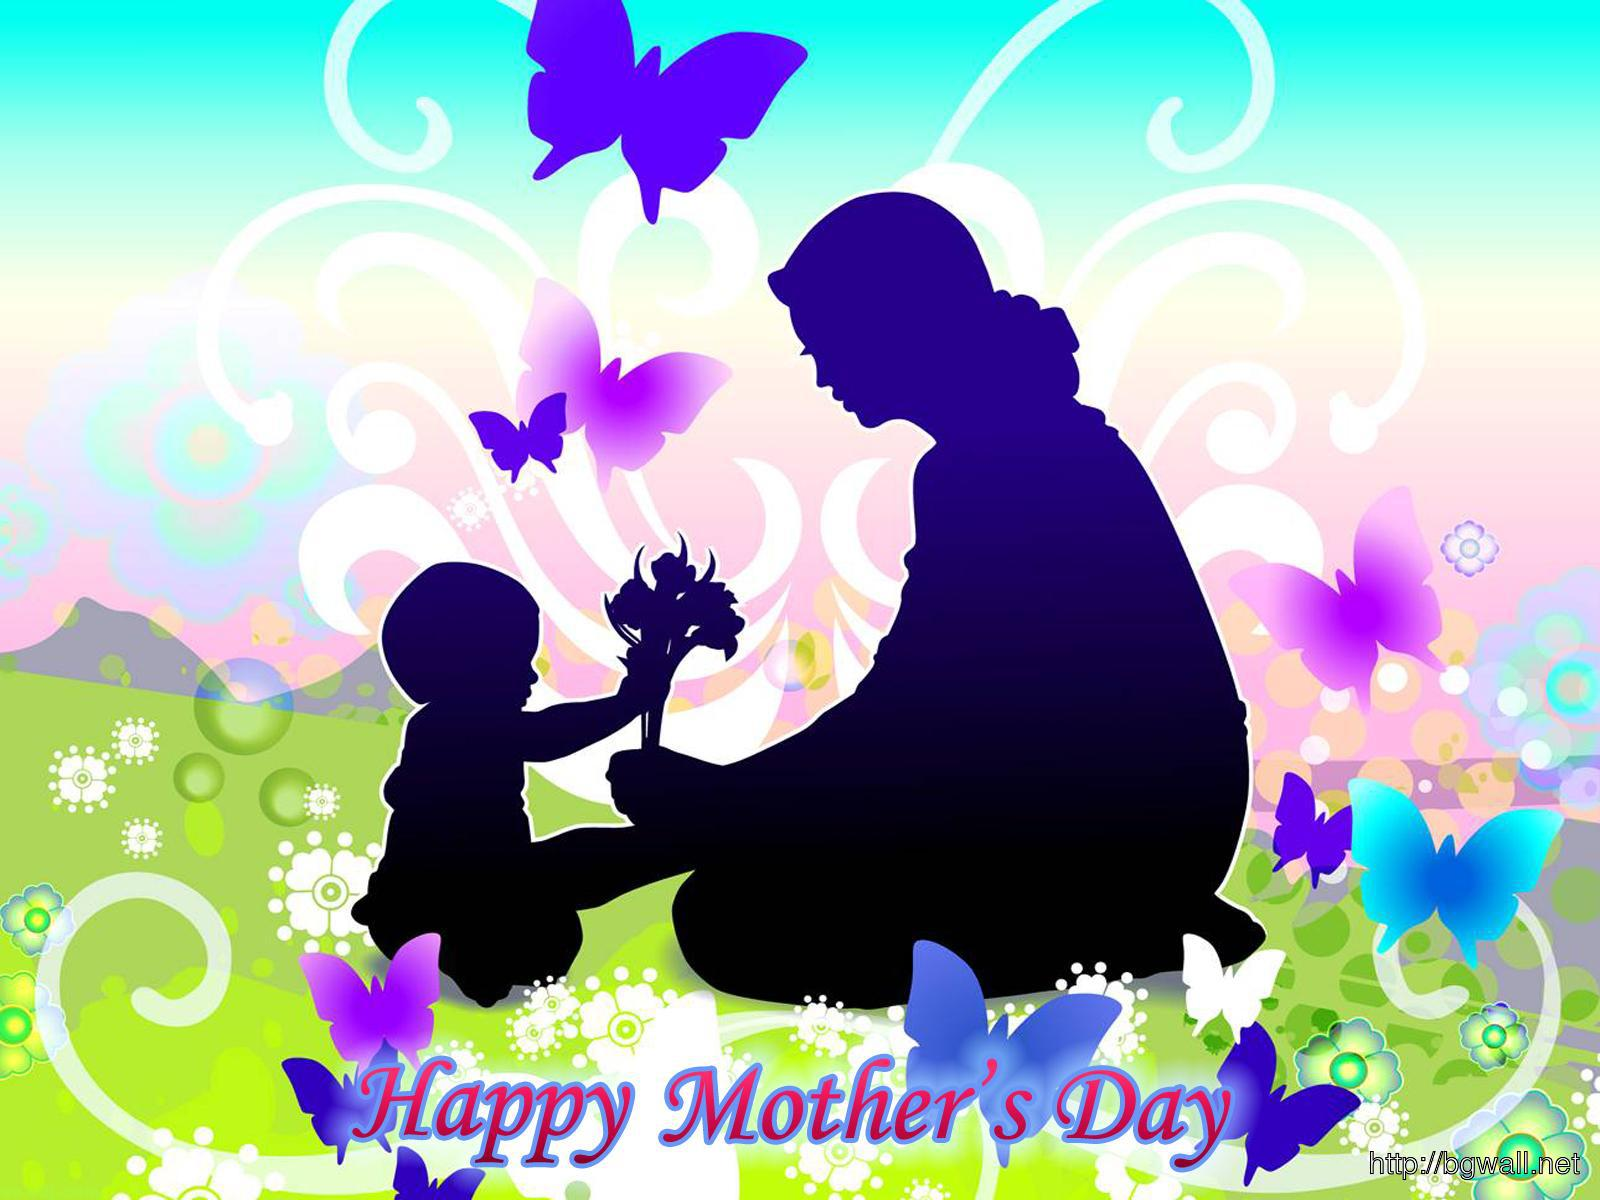 Happy Mothers Day Wallpaper Image Background Wallpaper Hd